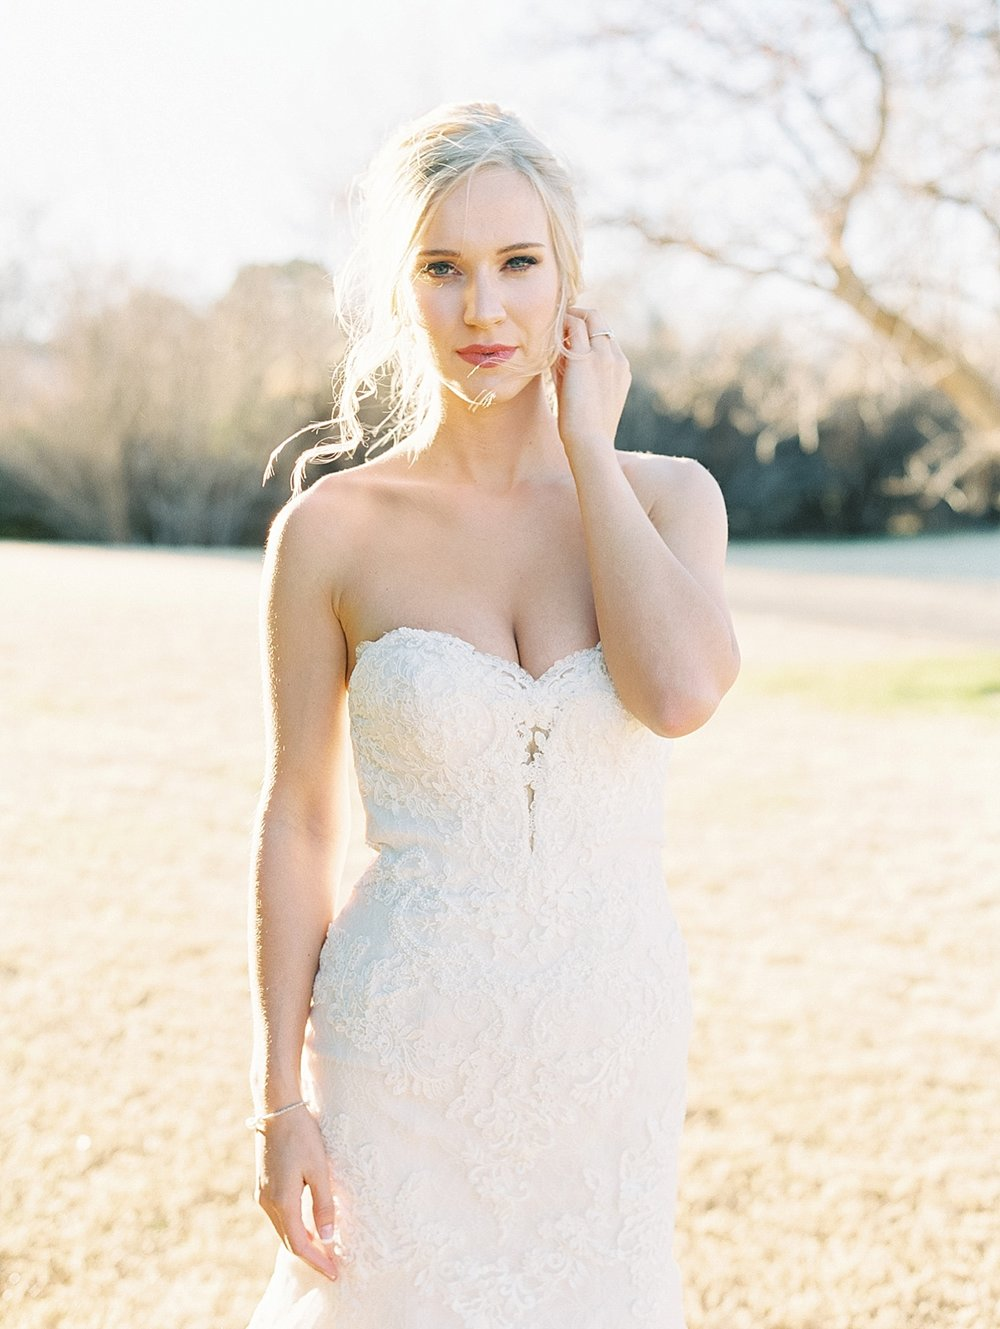 Dallas Wedding Photographer | Becca Lea Photography